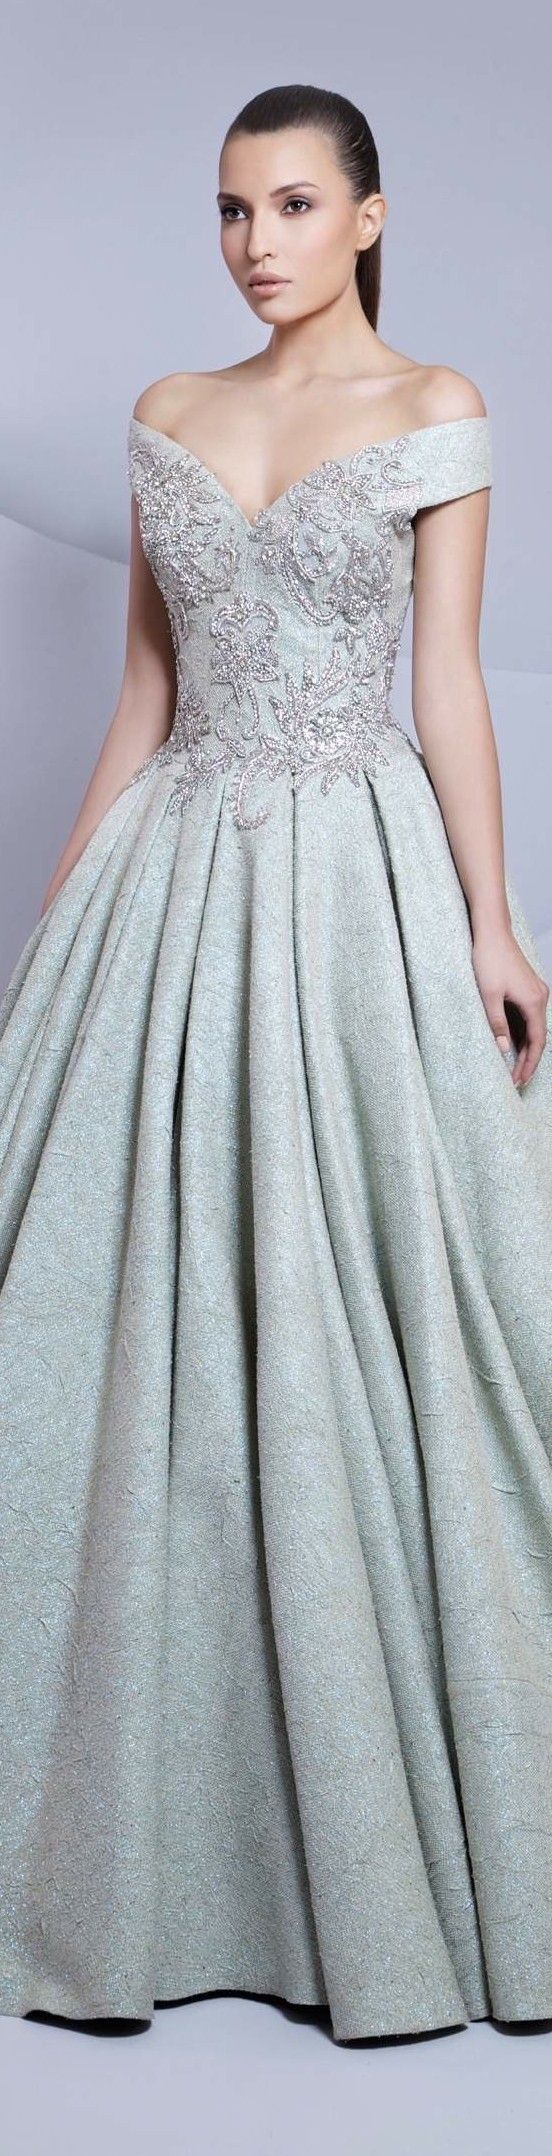 482 best ✿Gown✿ images on Pinterest | Dream dress, Party fashion ...